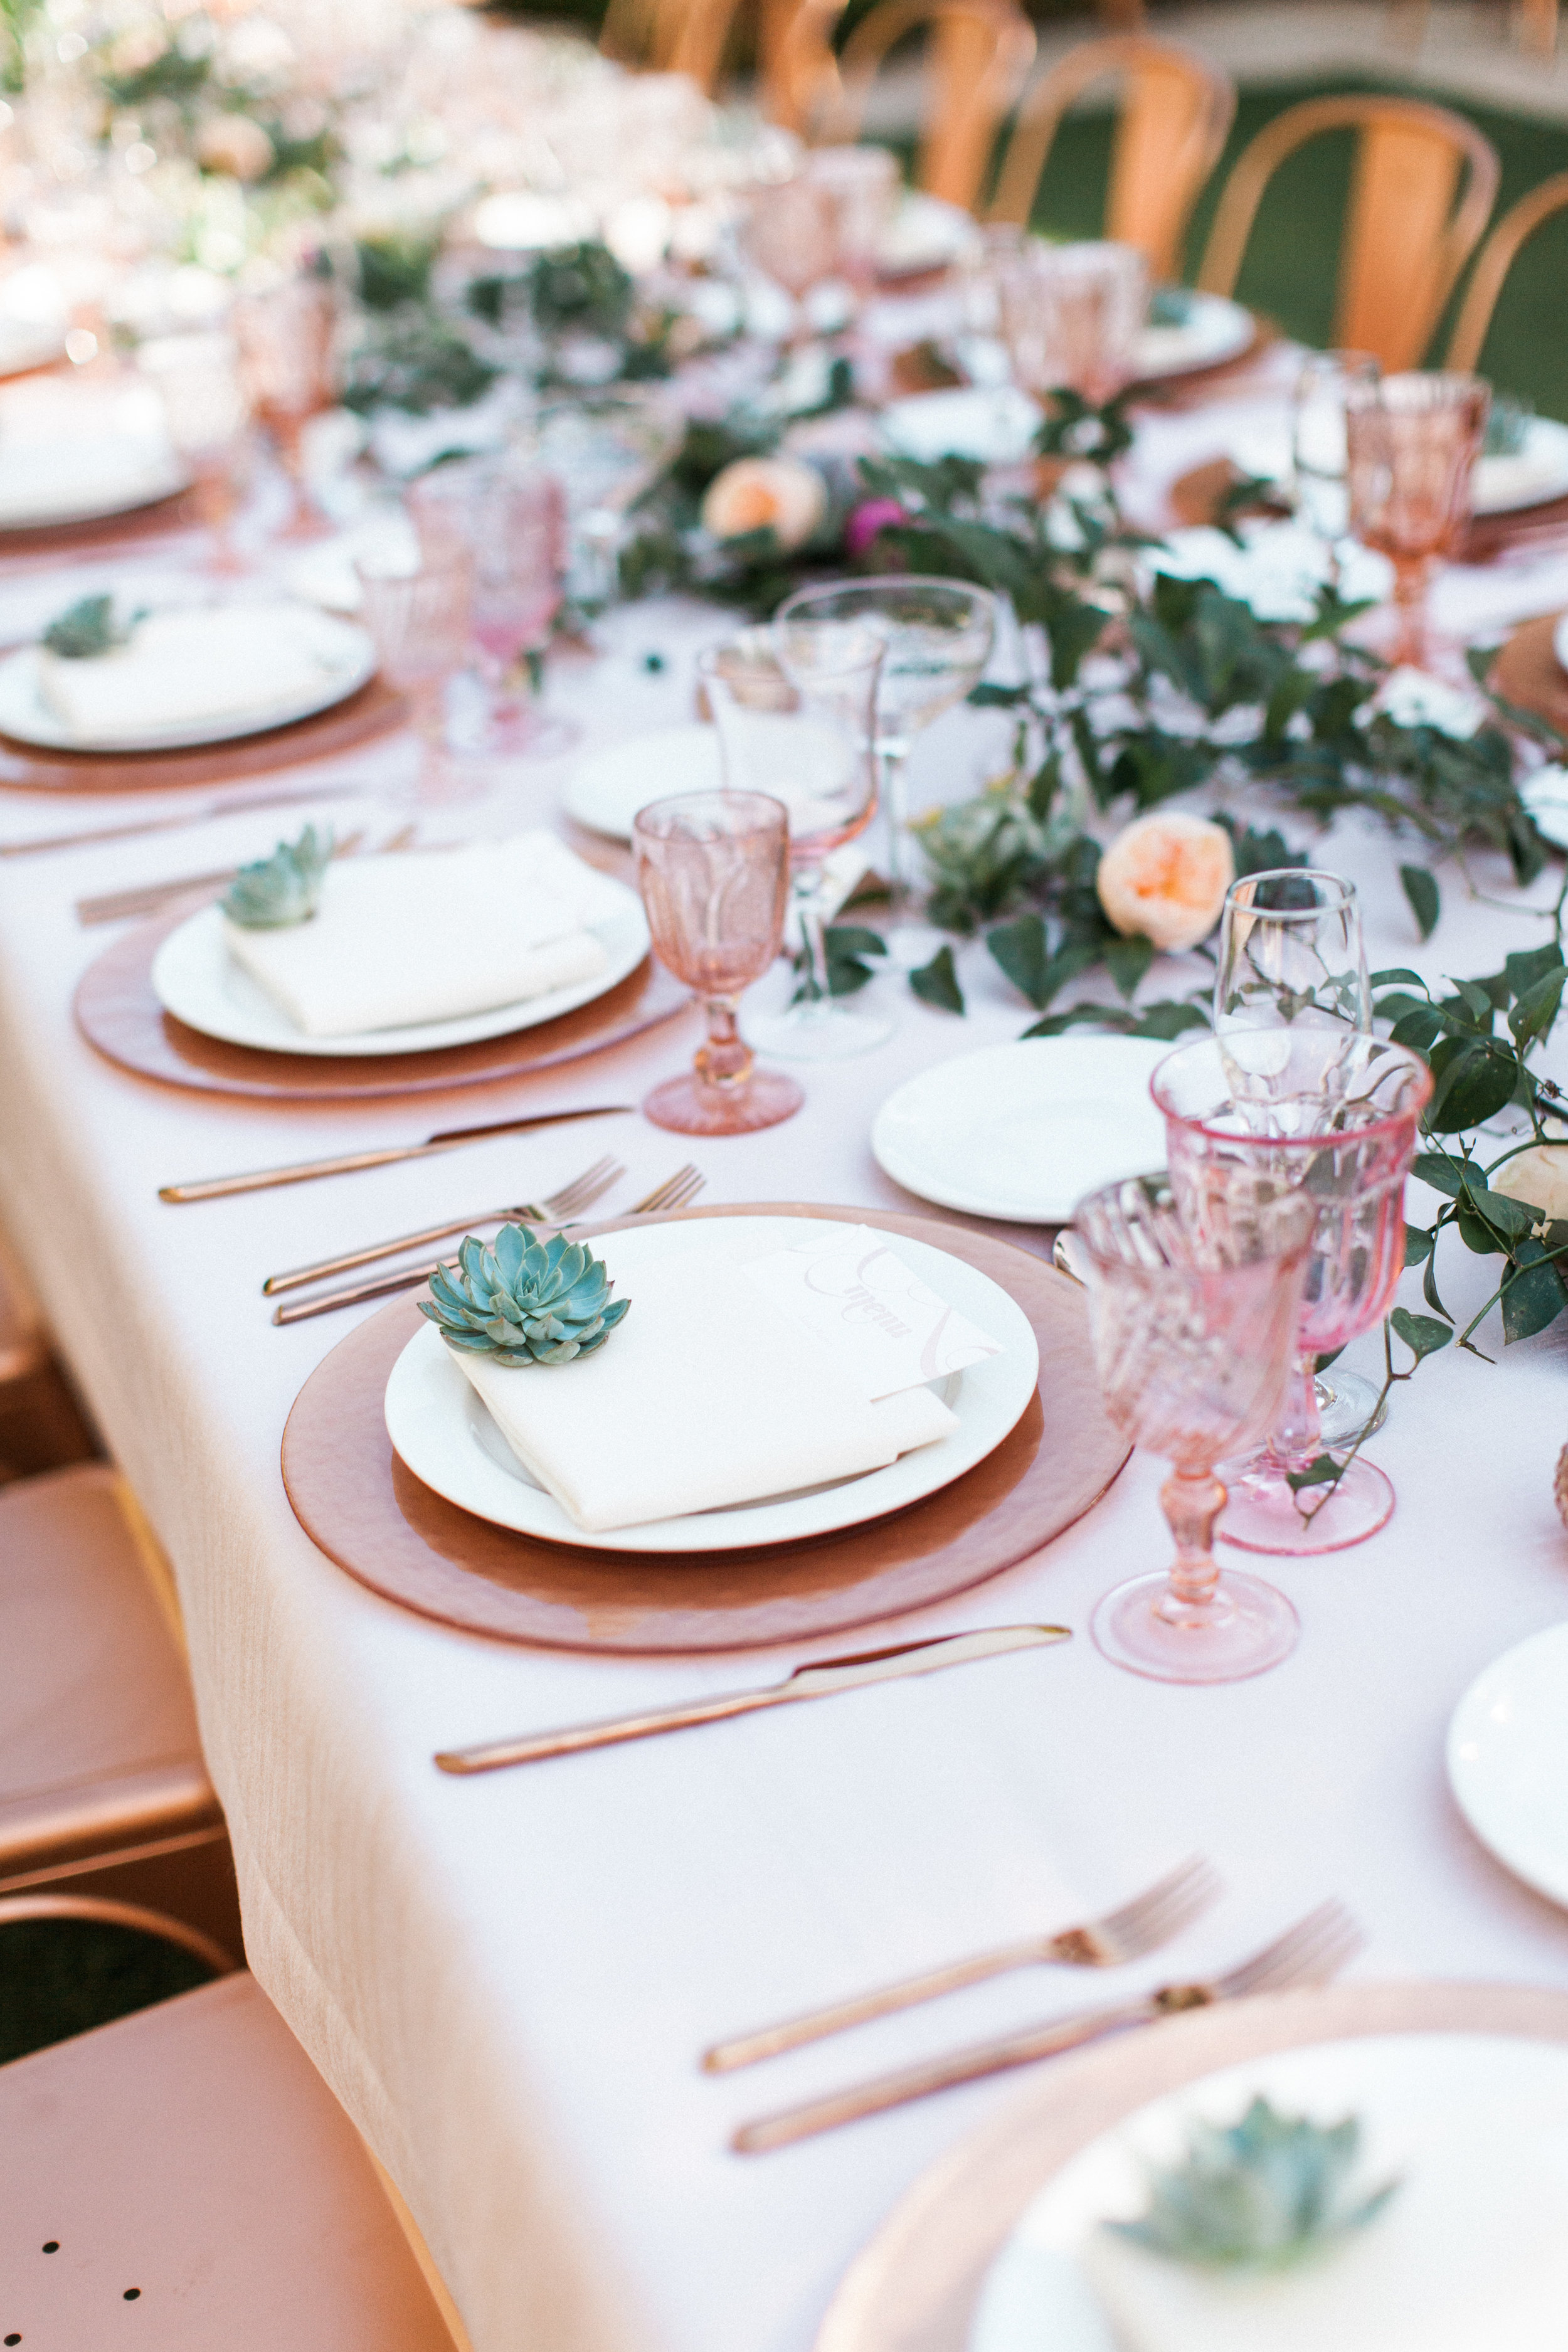 Rose Gold Blog A Day To Cherish Weddings Phoenix Scottsdale Arizona Wedding Planner